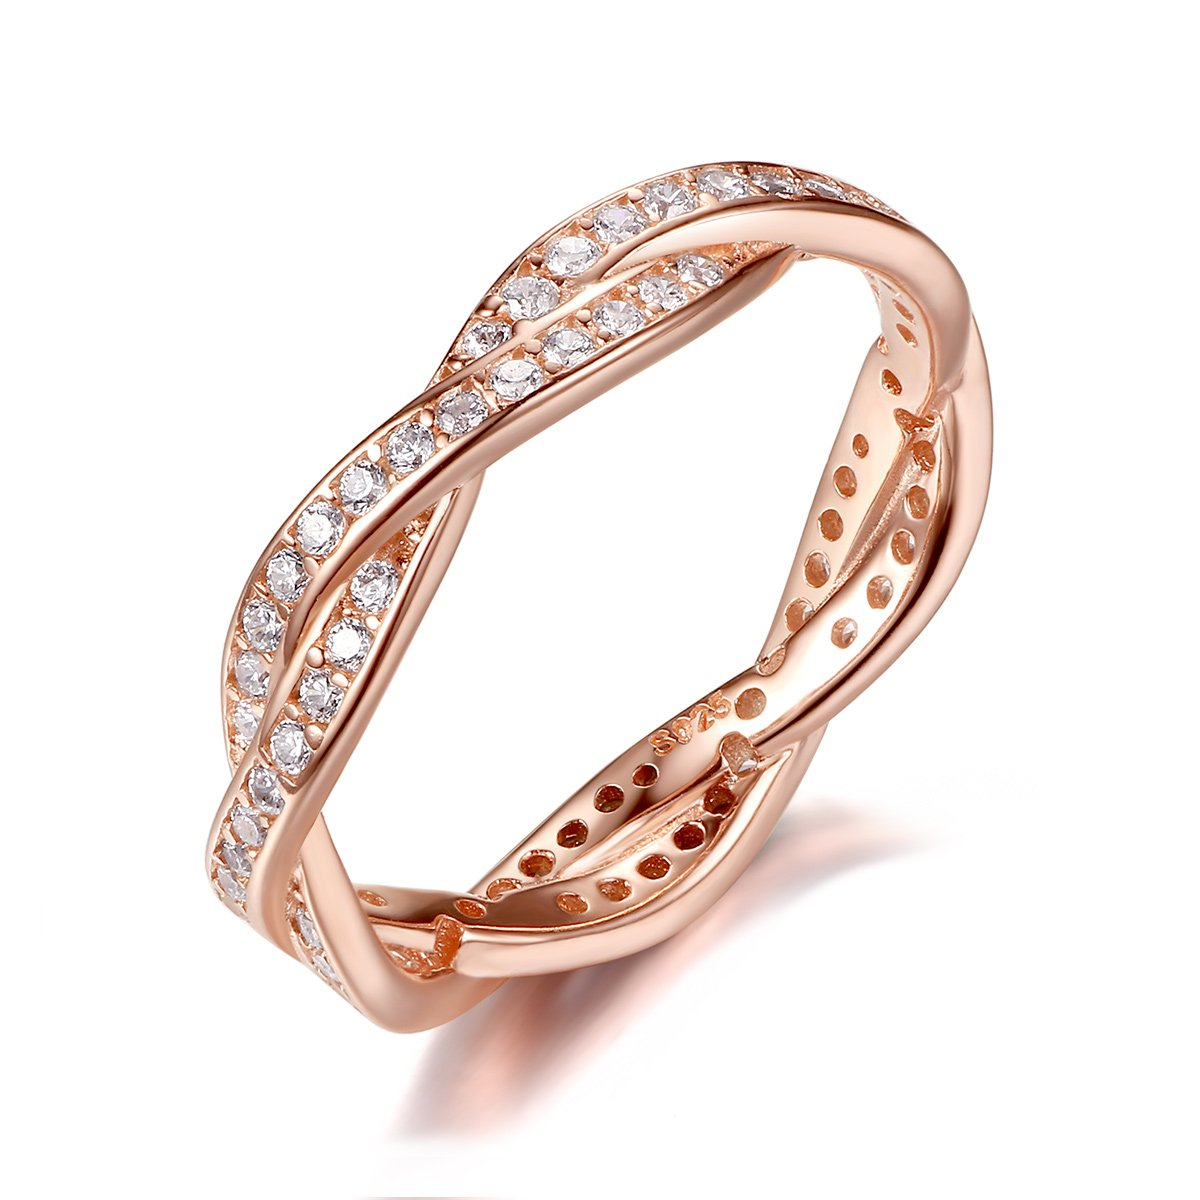 BAMOER Rose Gold Plated Eternity Promise Rings Wedding Jewelry 925 Sterling Silver with CZ,Size 7